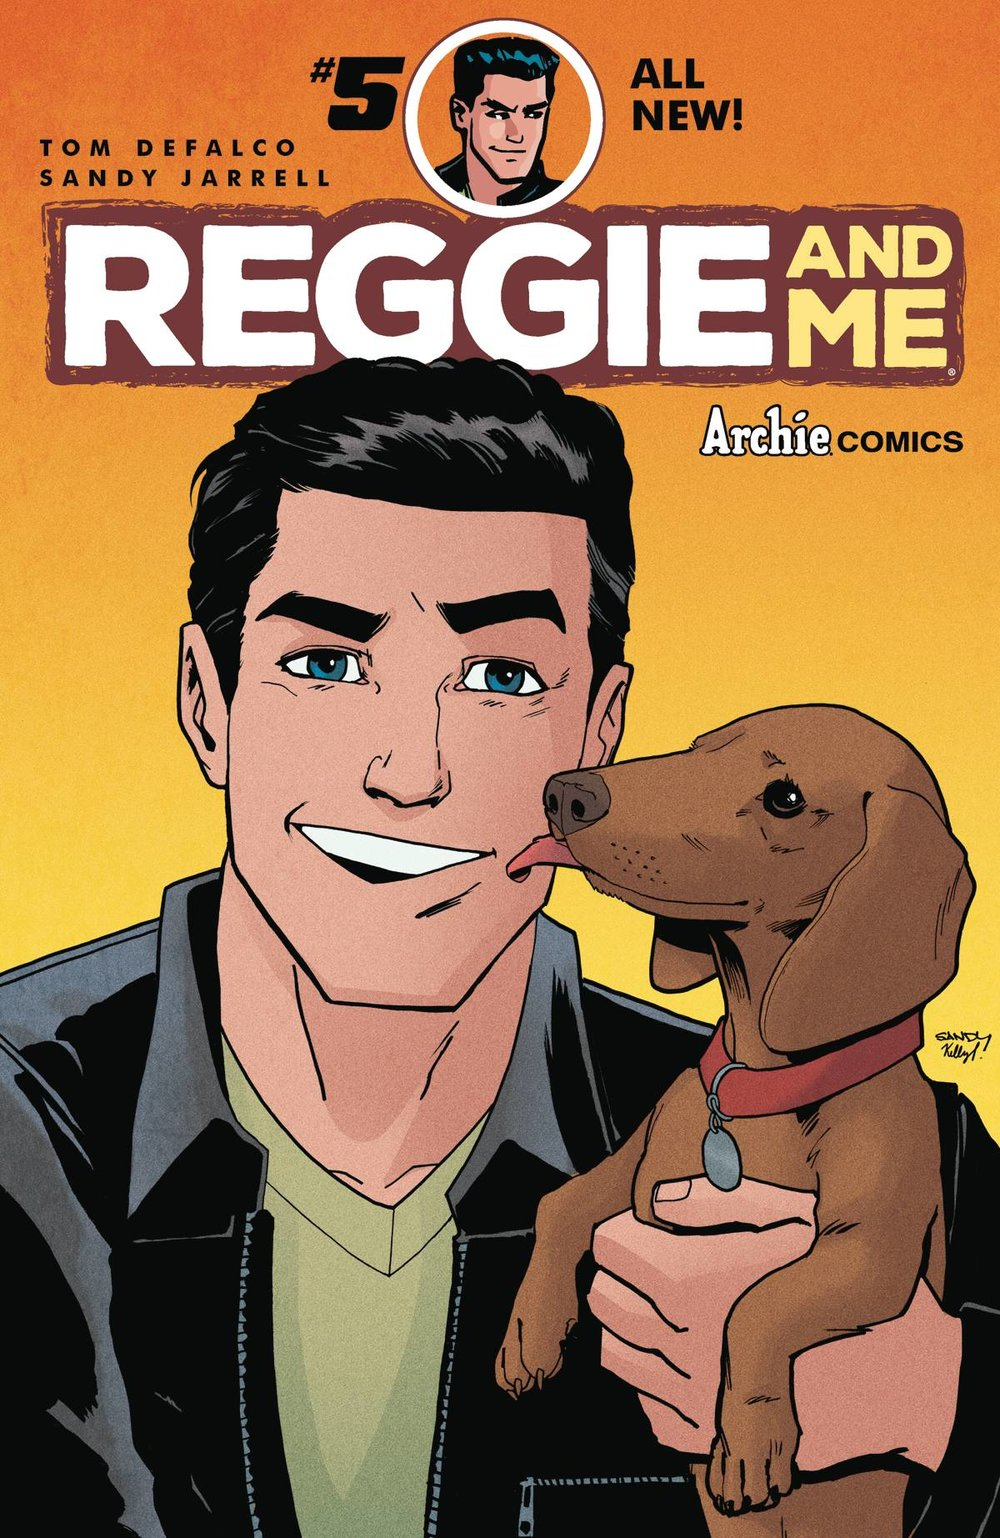 REGGIE AND ME 5 of 5 CVR A REG SANDY JARRELL.jpg